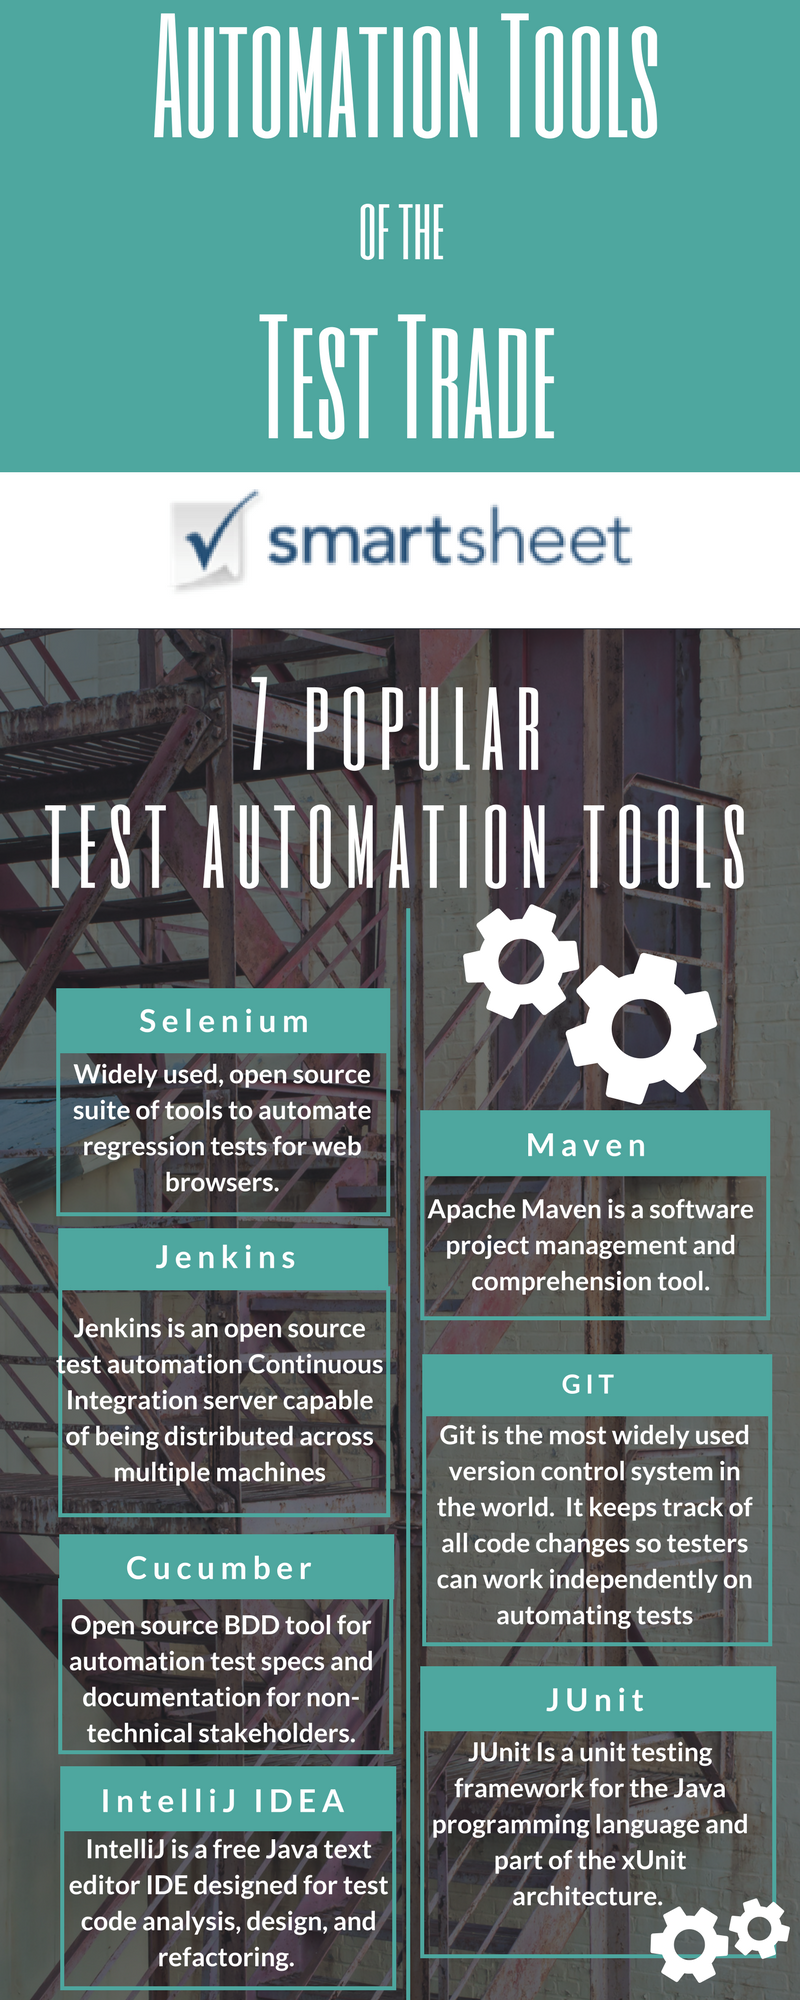 Explore Software Automation Tools and Trends | Smartsheet